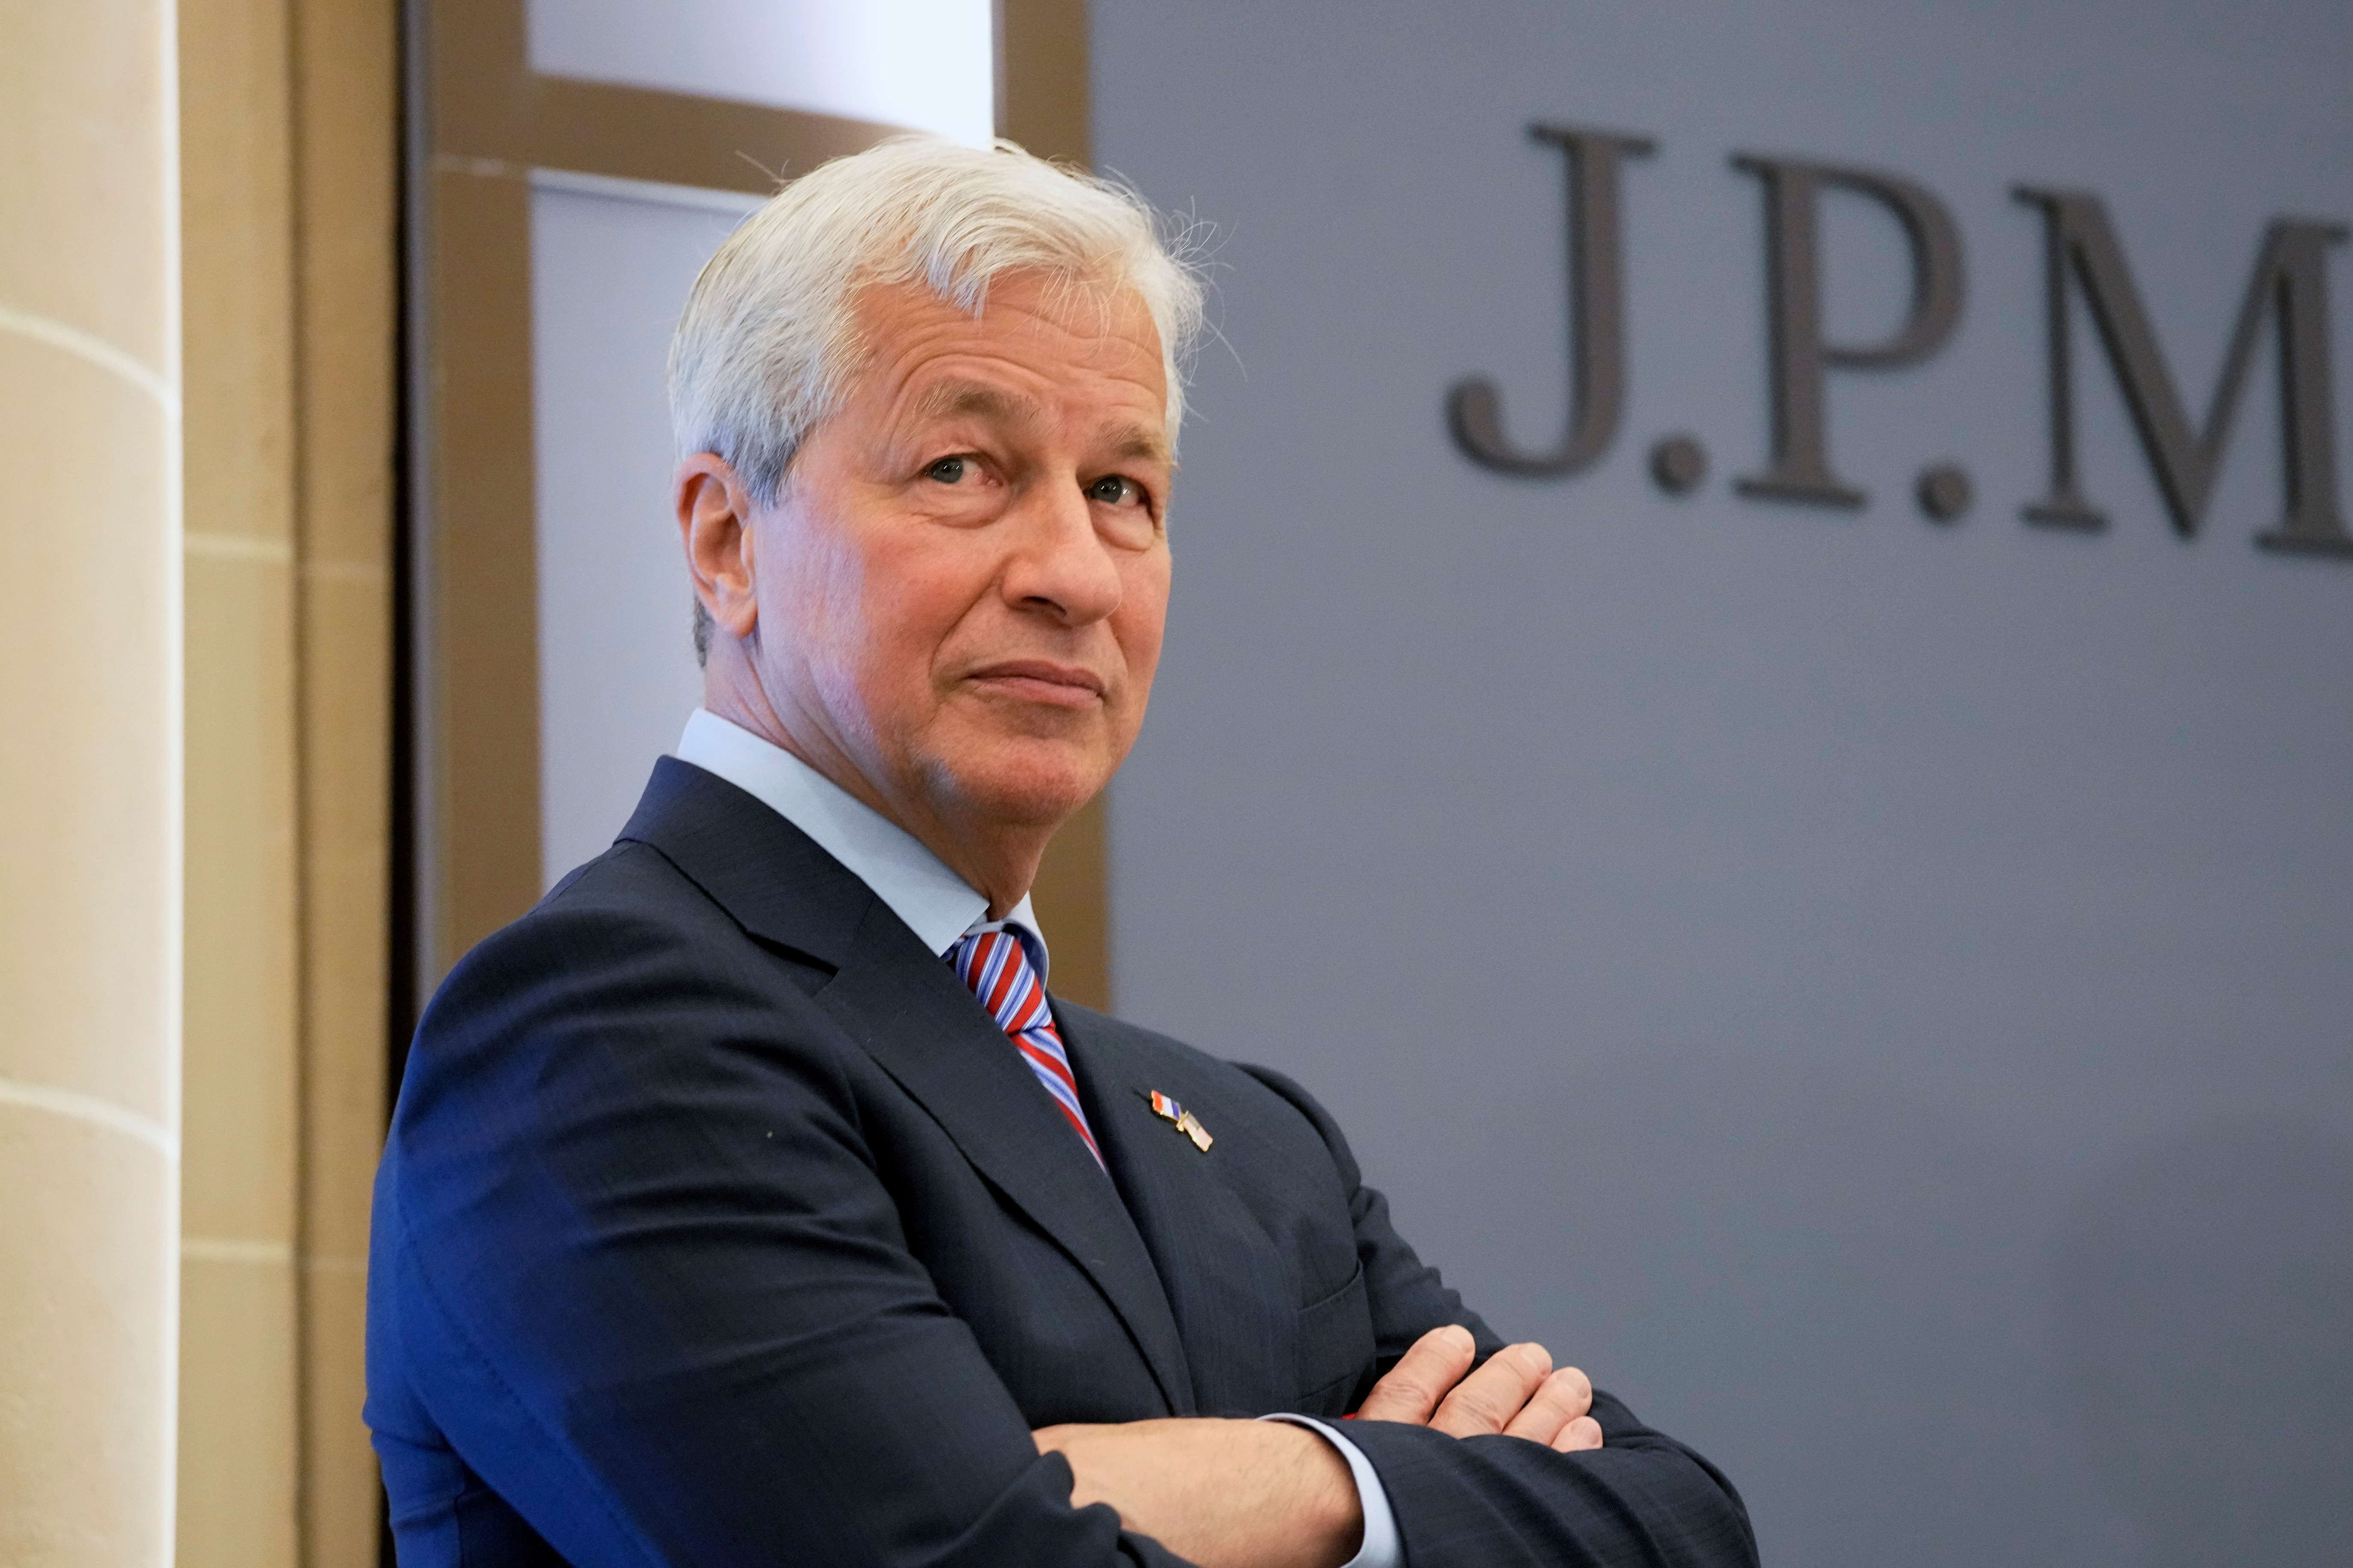 Analysis: JPMorgan hoards cash as Dimon expects rates to rise